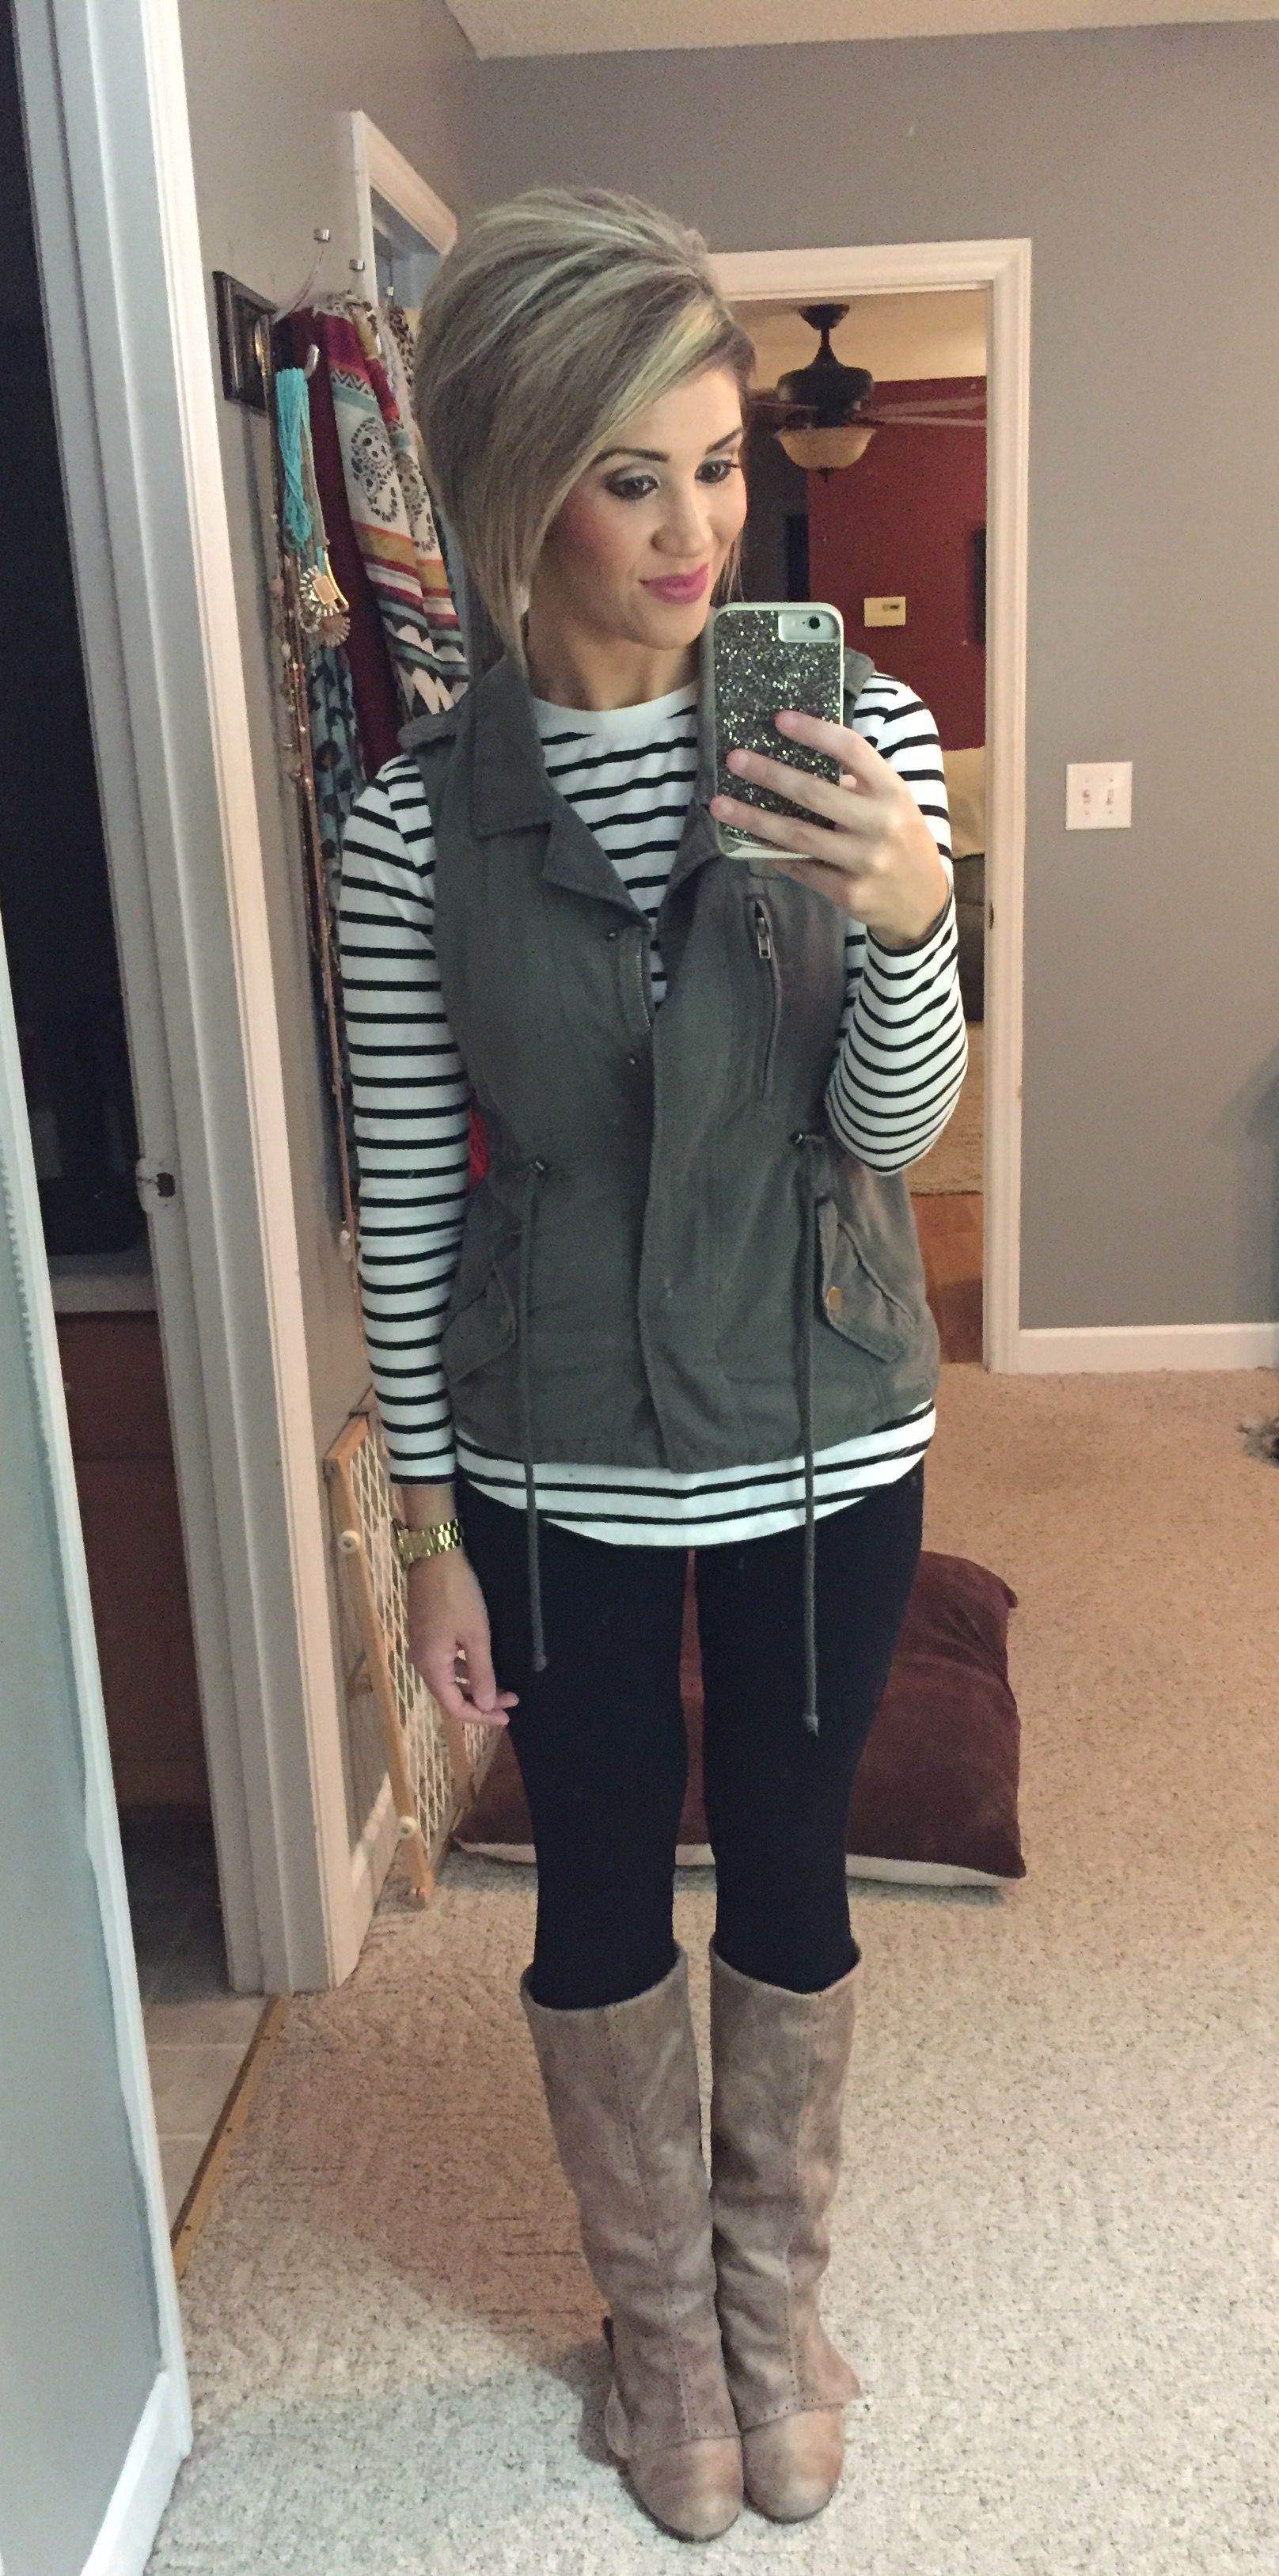 db698f901a5 Green military vest with striped shirt. Black leggings and boots fall outfit